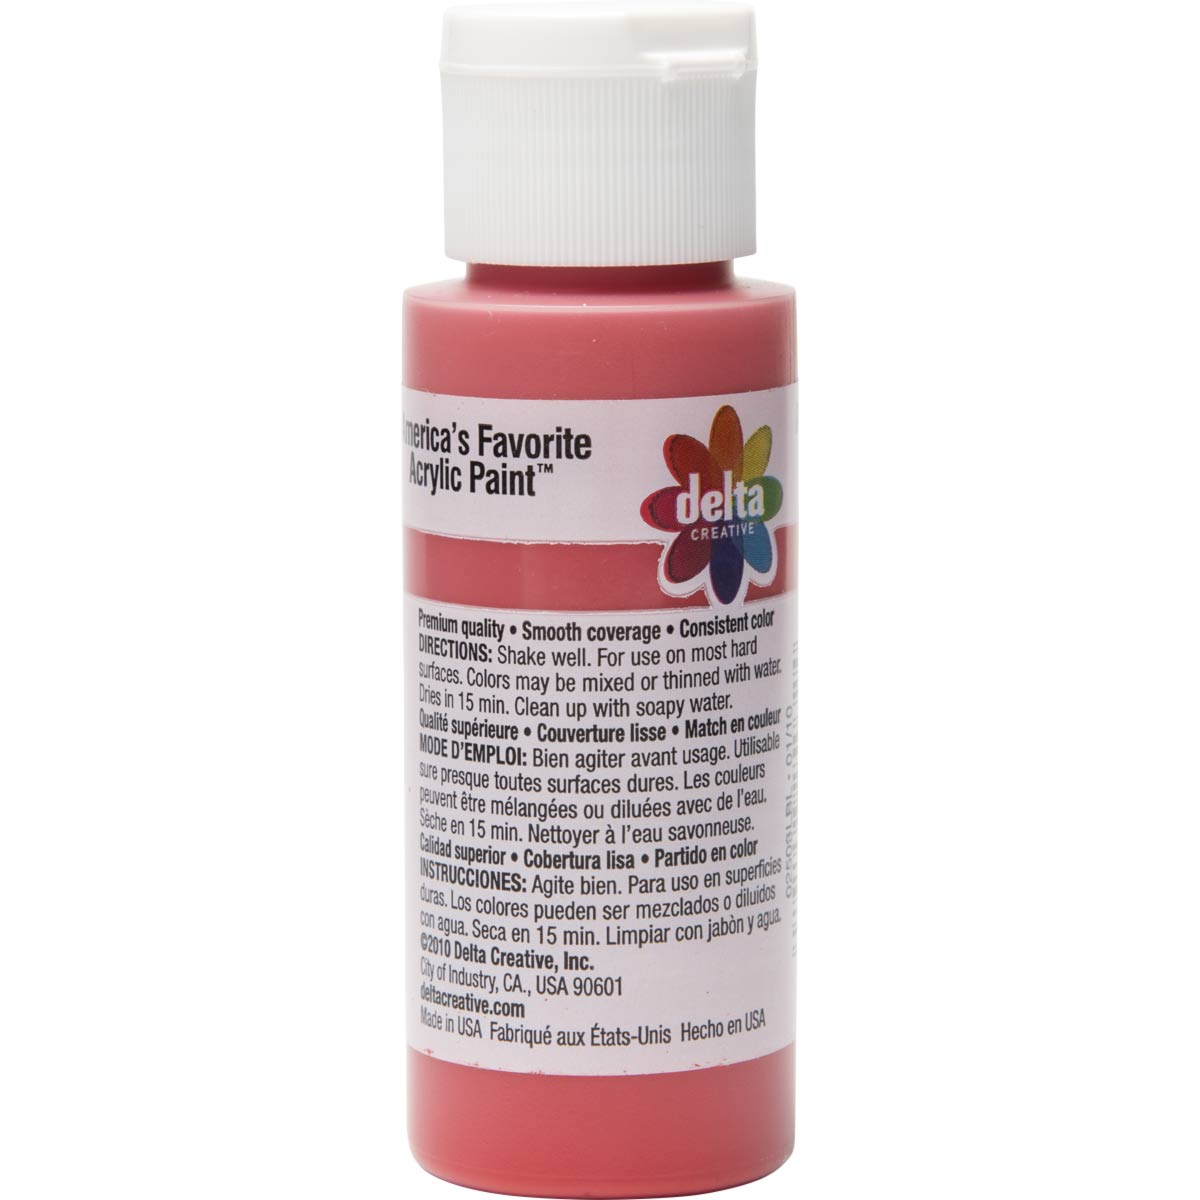 Delta Ceramcoat ® Acrylic Paint - Bright Red, 2 oz.